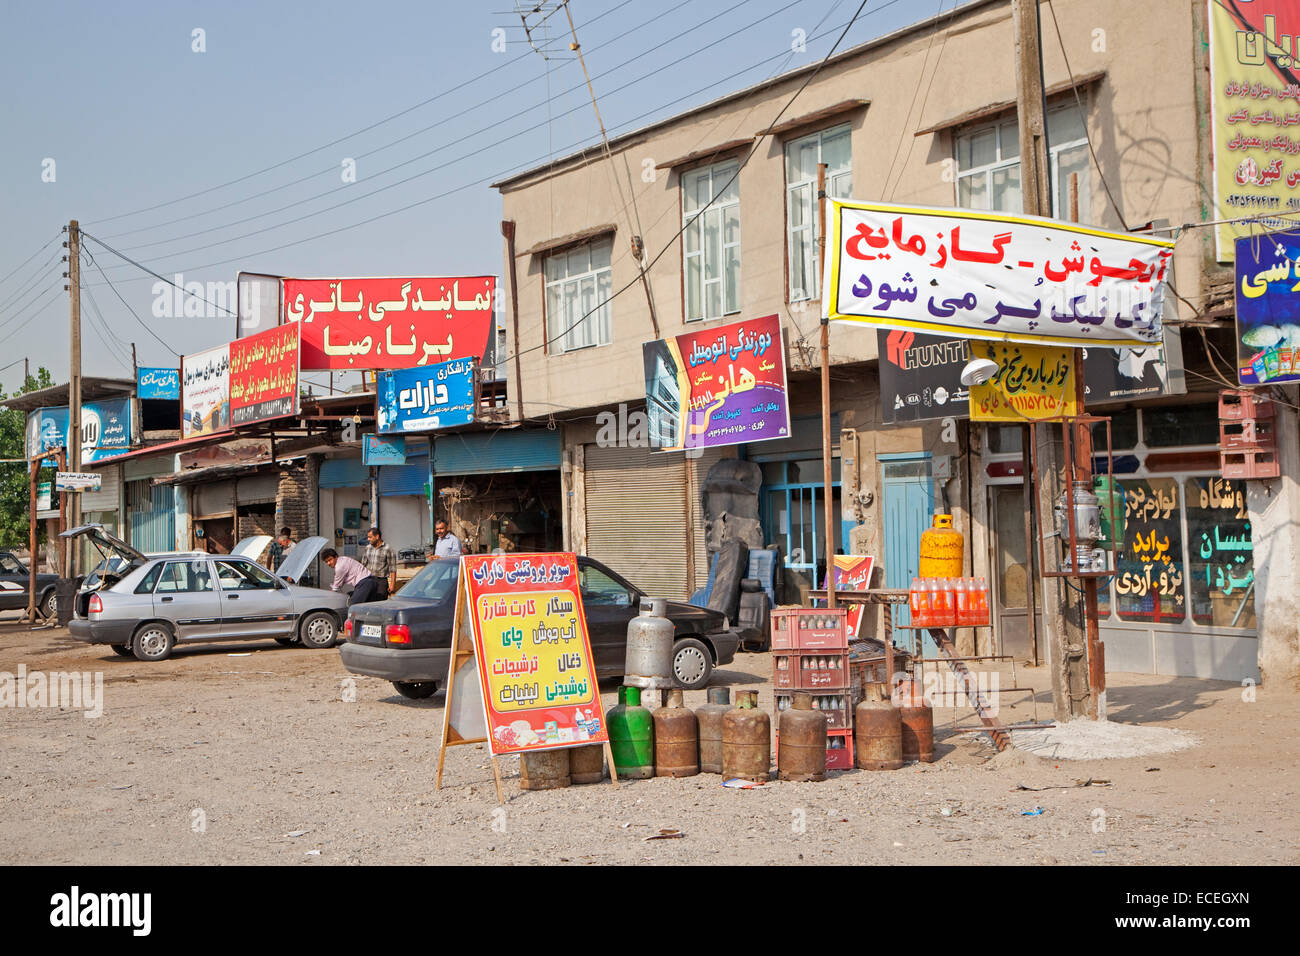 Iranians working on car in primitive garage, repair shops and grocery shop in village in Iran - Stock Image